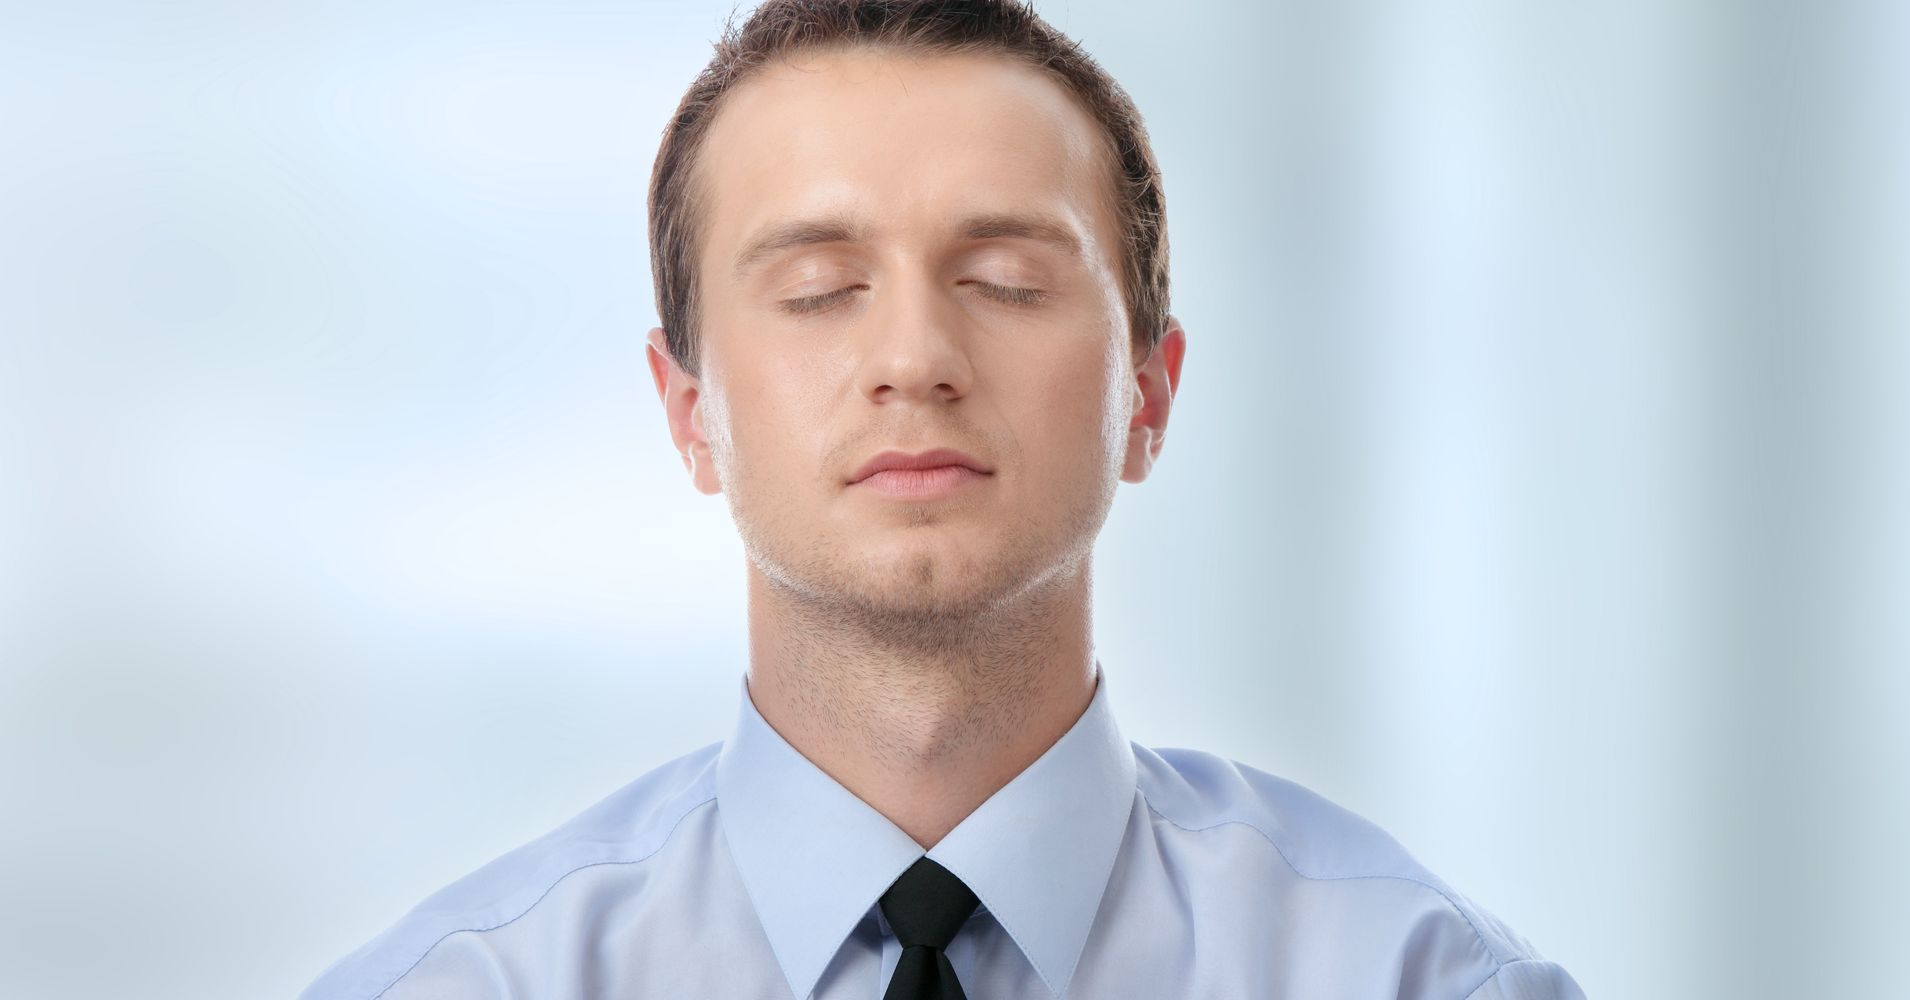 Want to know what stresses out a stress management expert?